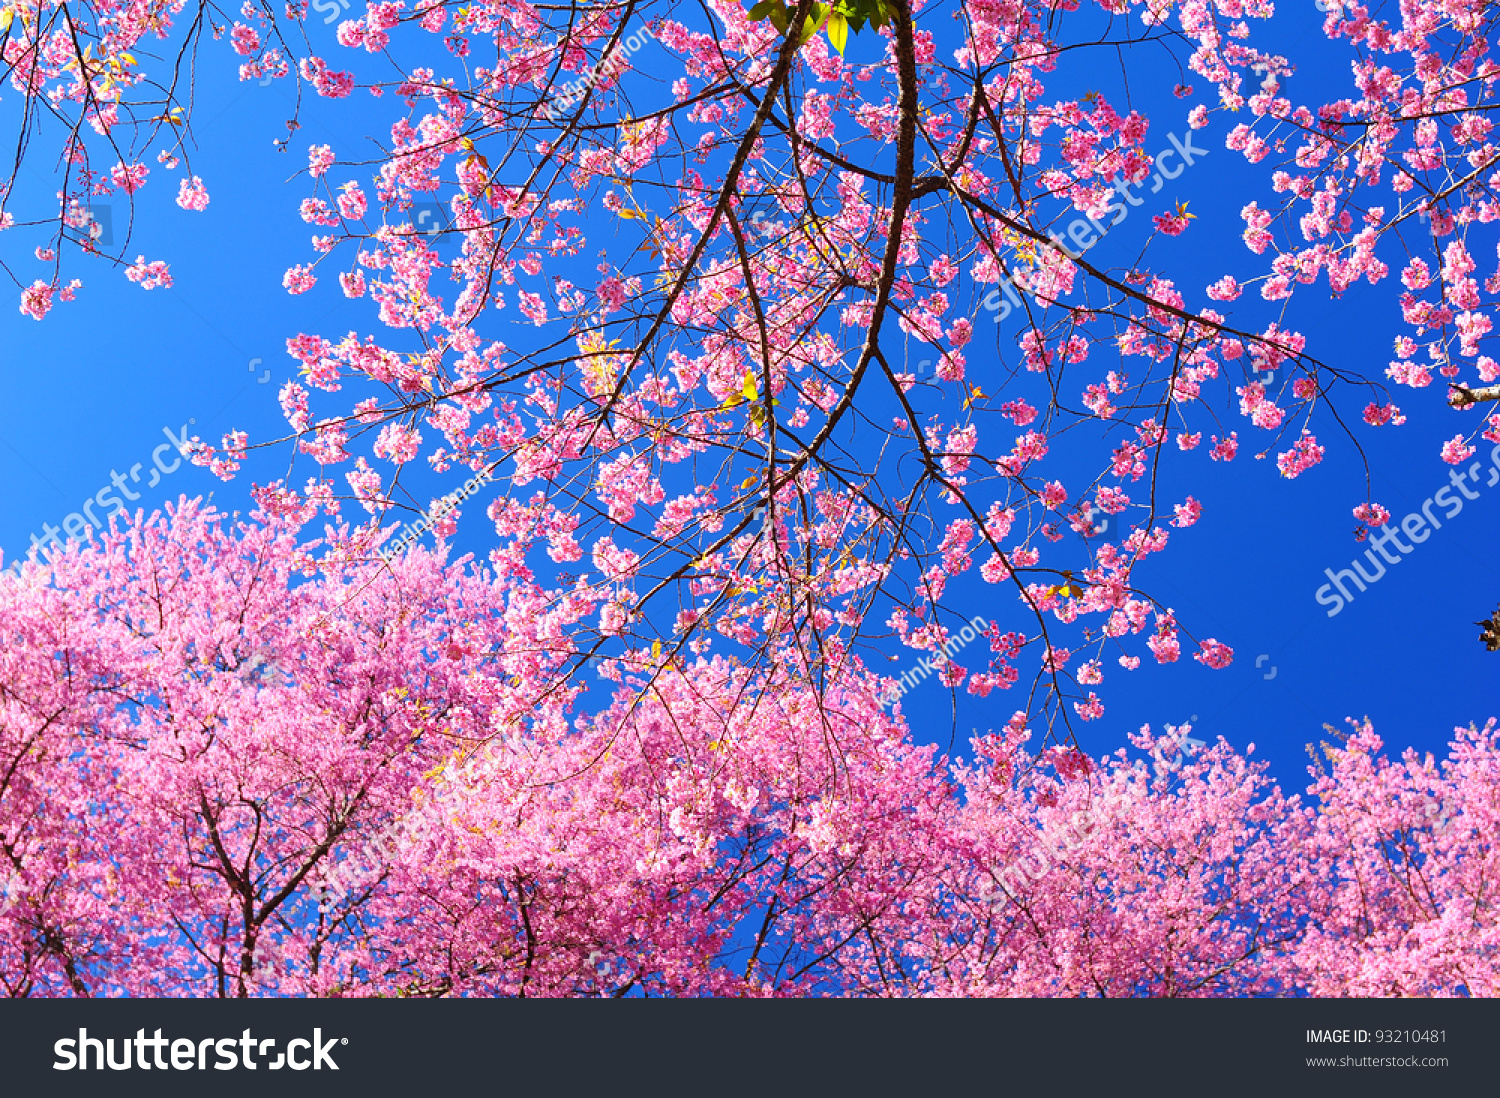 pink spring trees wallpaper - photo #48